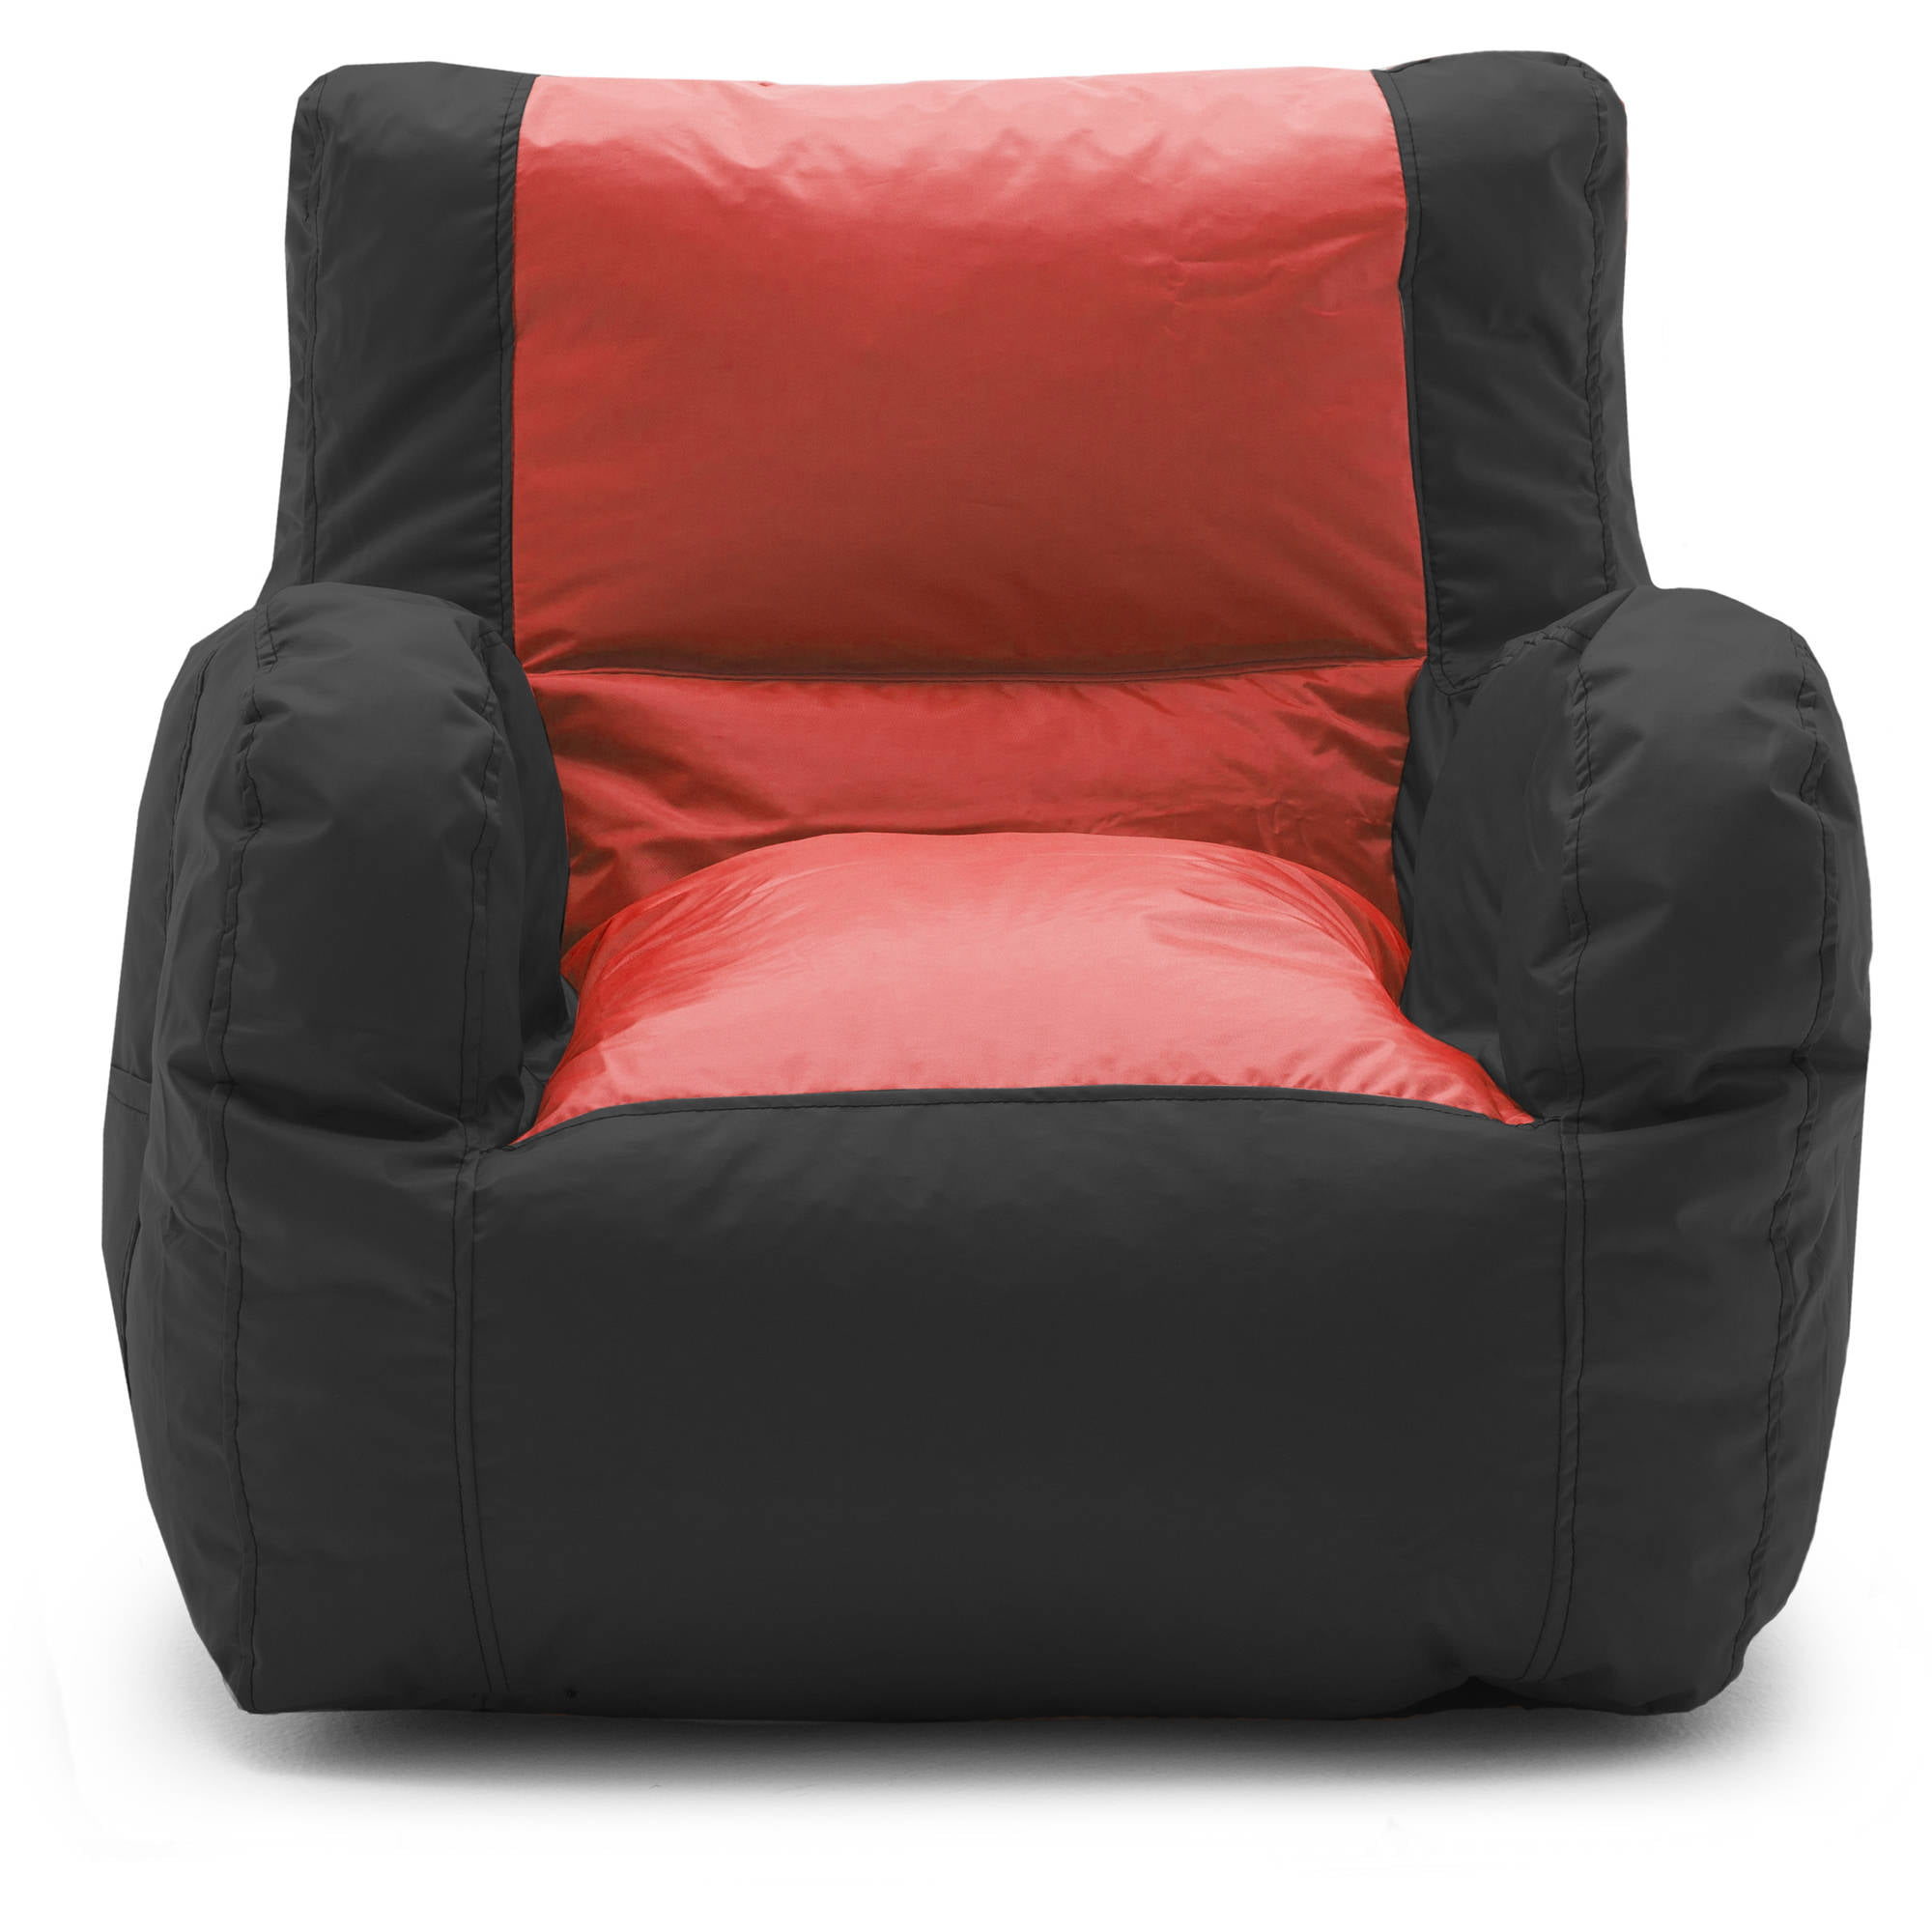 mainstays microsuede butterfly chair available in multiple colors walmartcom